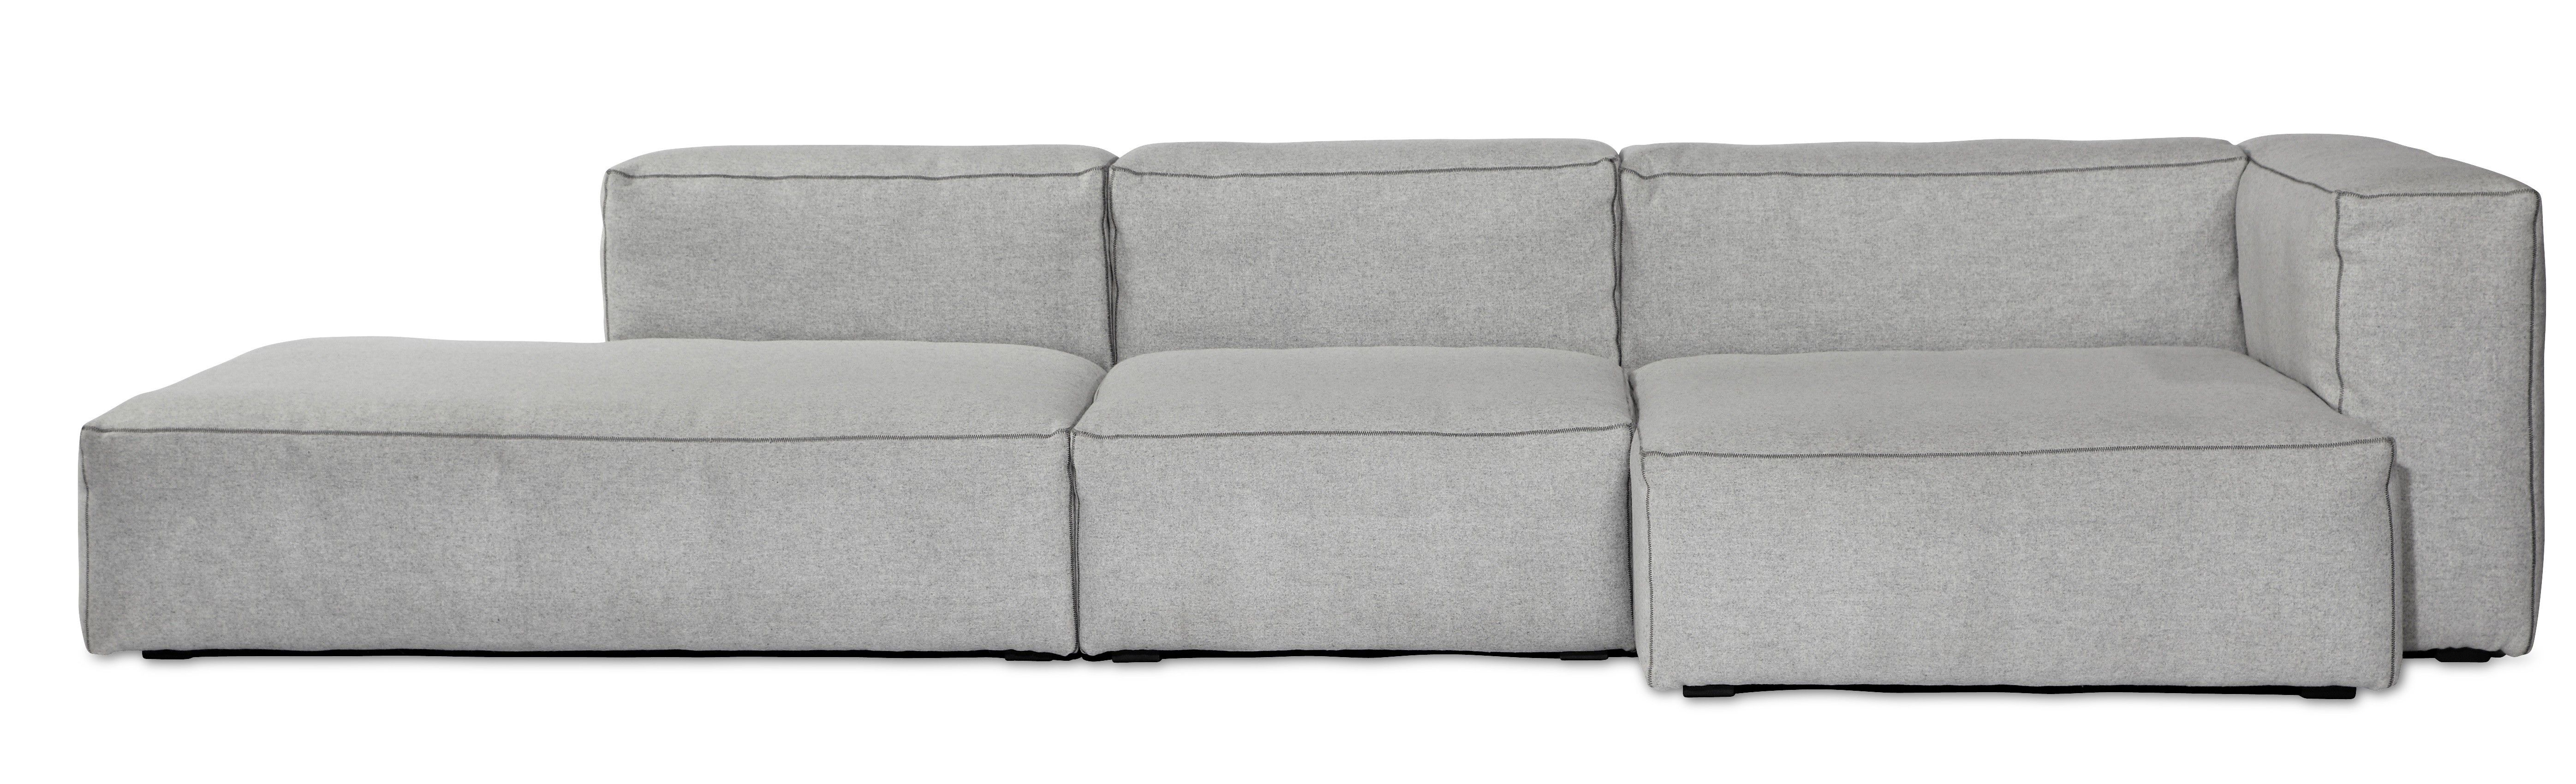 HAY Mags Soft Sofa bank NeW LivinGrooM Pinterest